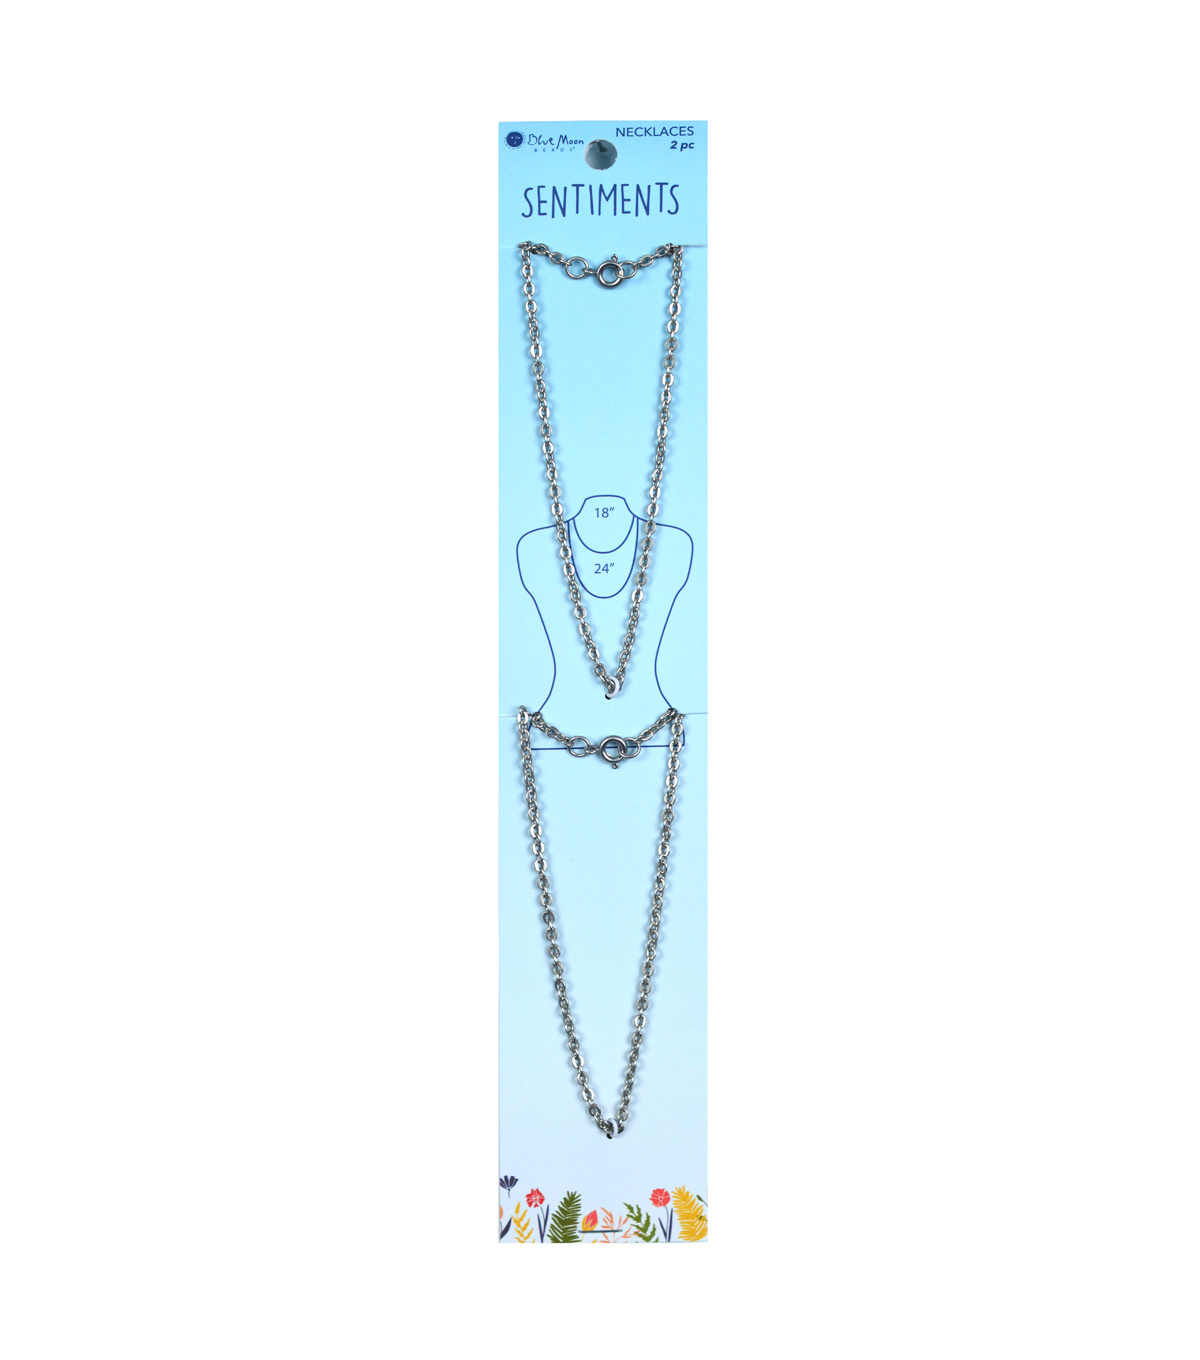 Blue Moon Beads Sentiments 2 pk Necklaces-Silver